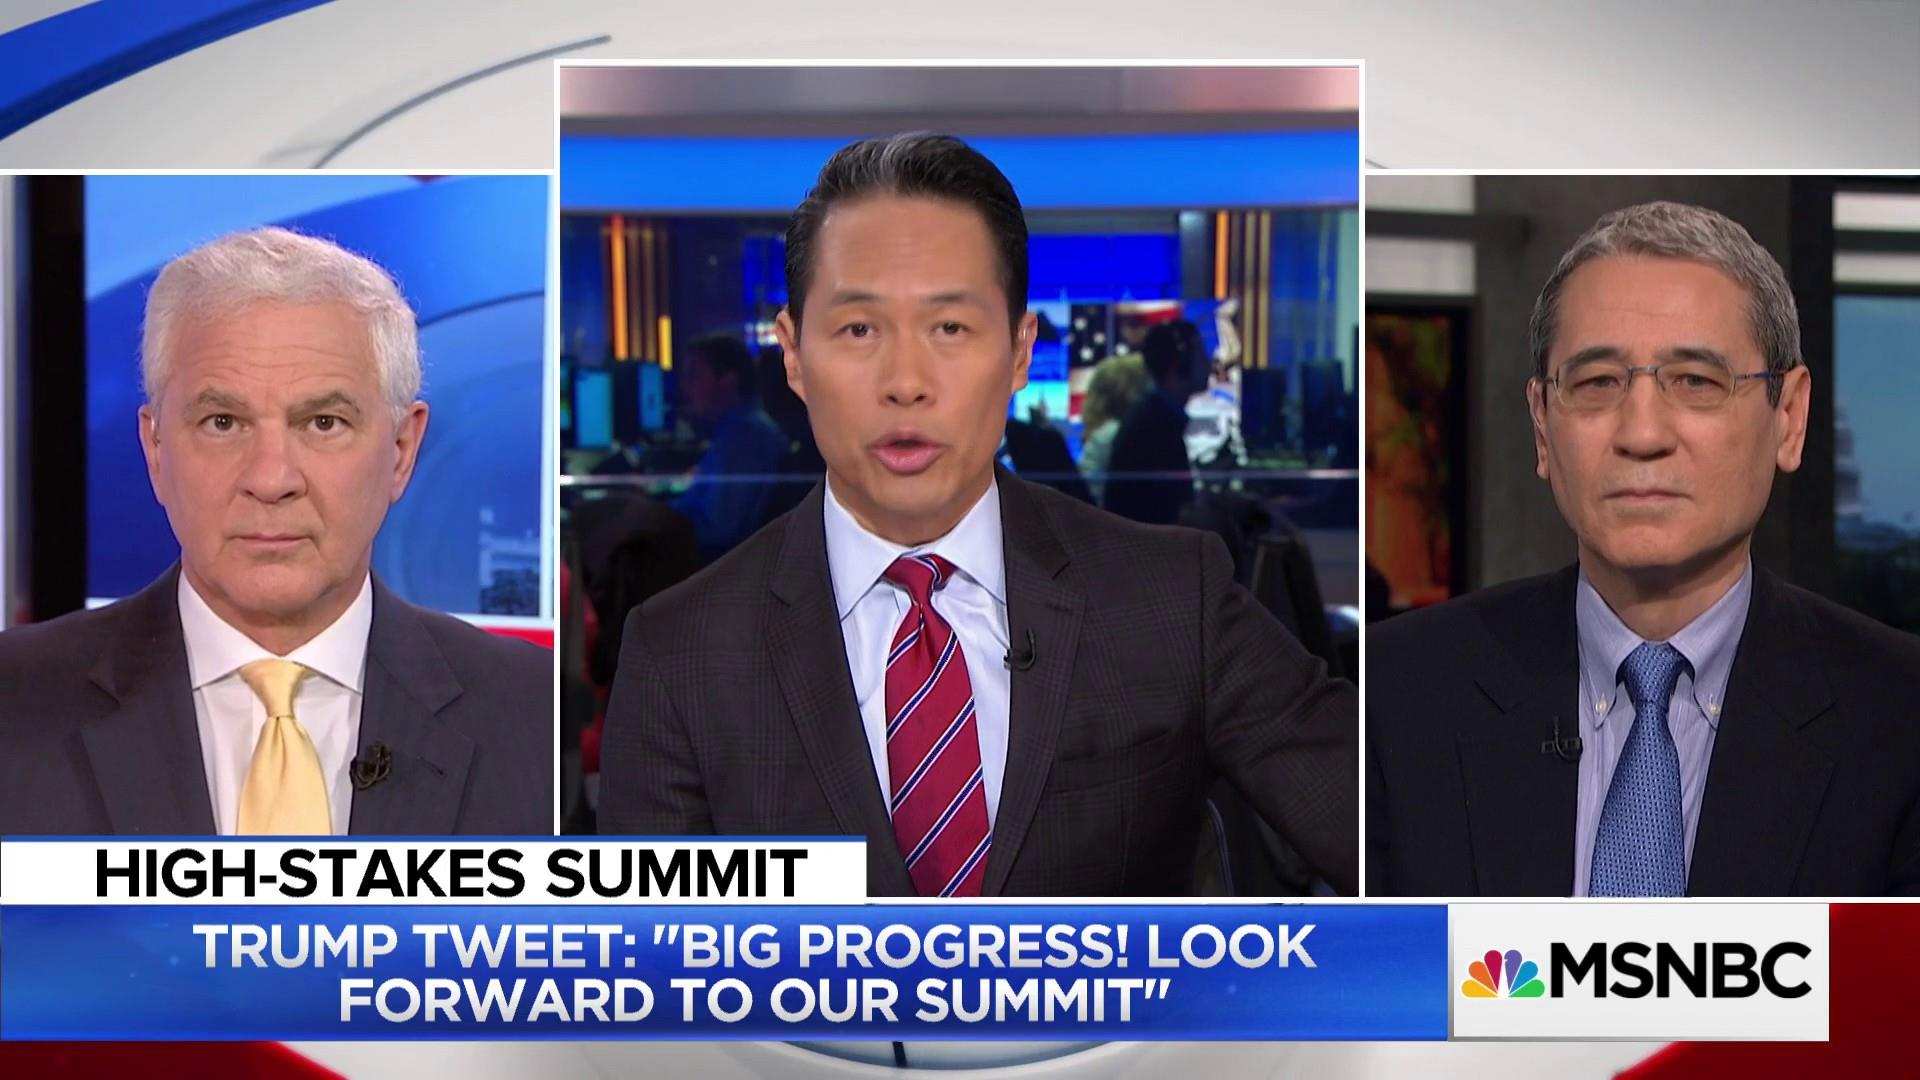 Nuclear analyst: N. Korea is calling the shots before summit